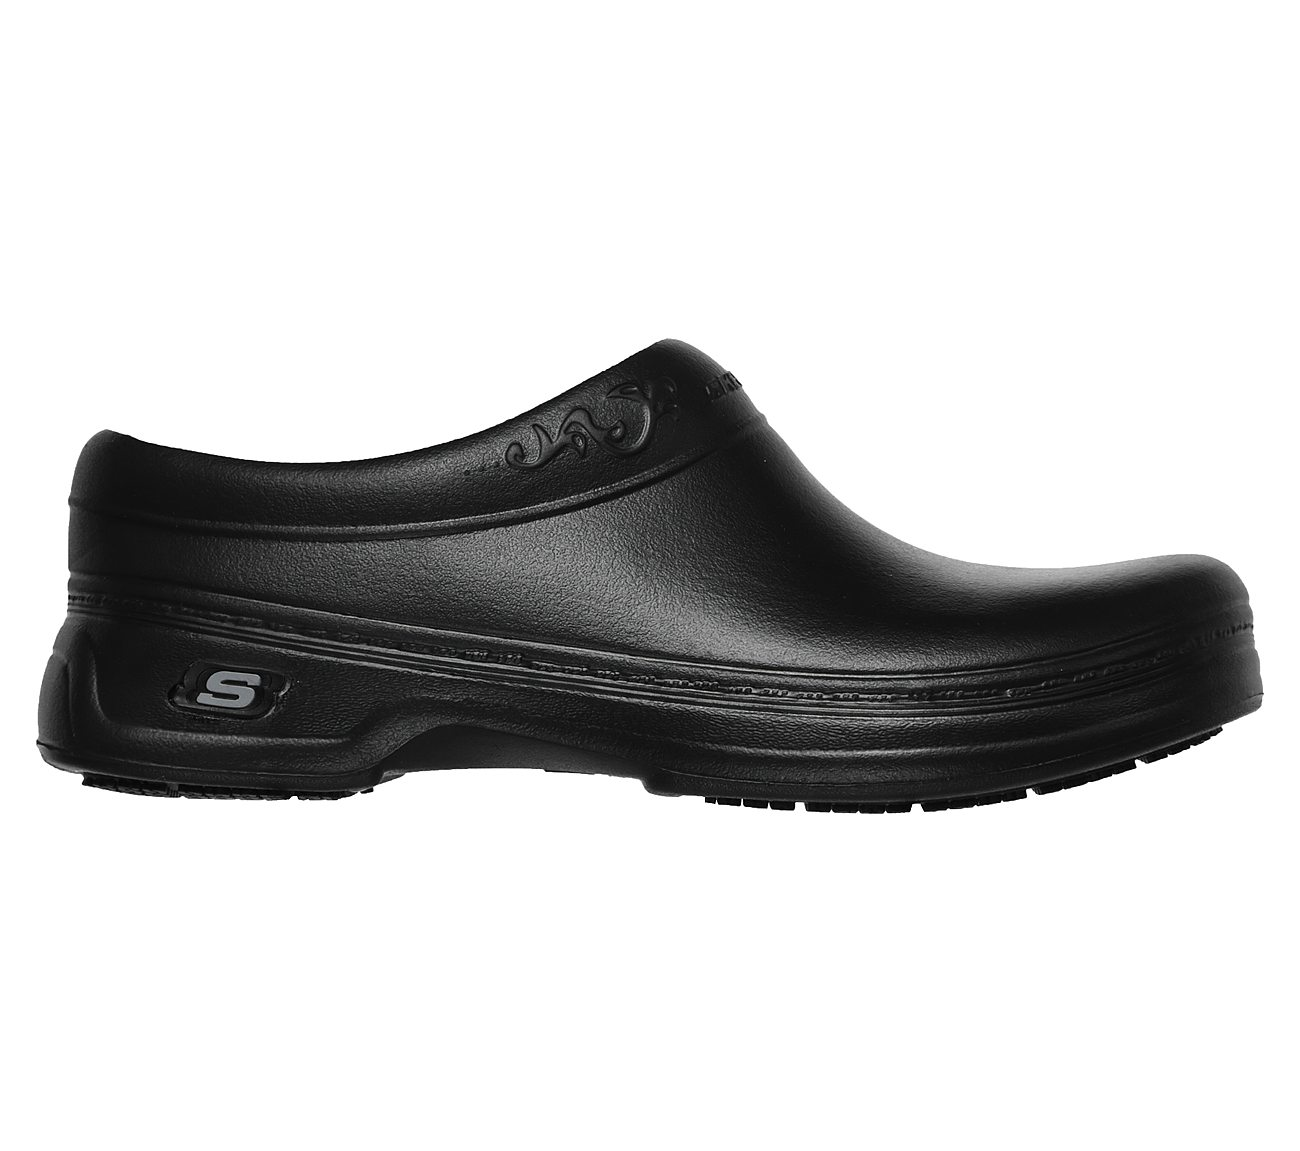 c7f58c0d1a8 Buy SKECHERS Work  Oswald - Clara Work Shoes only  44.00